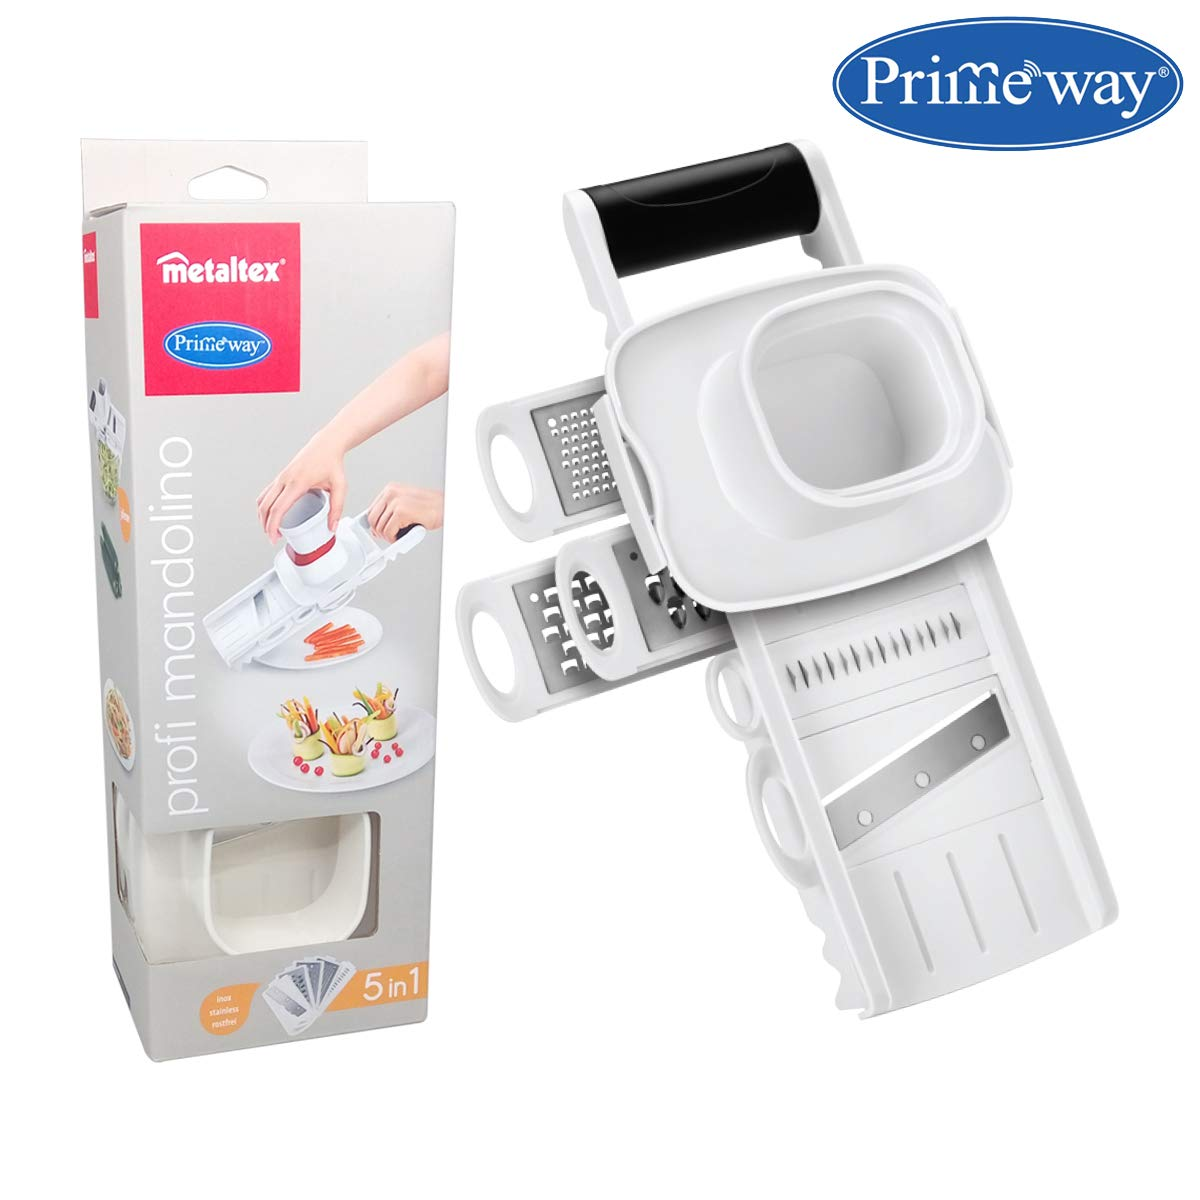 Primeway Metaltex Multipurpose Grater/Slicer 5 in 1 (White)